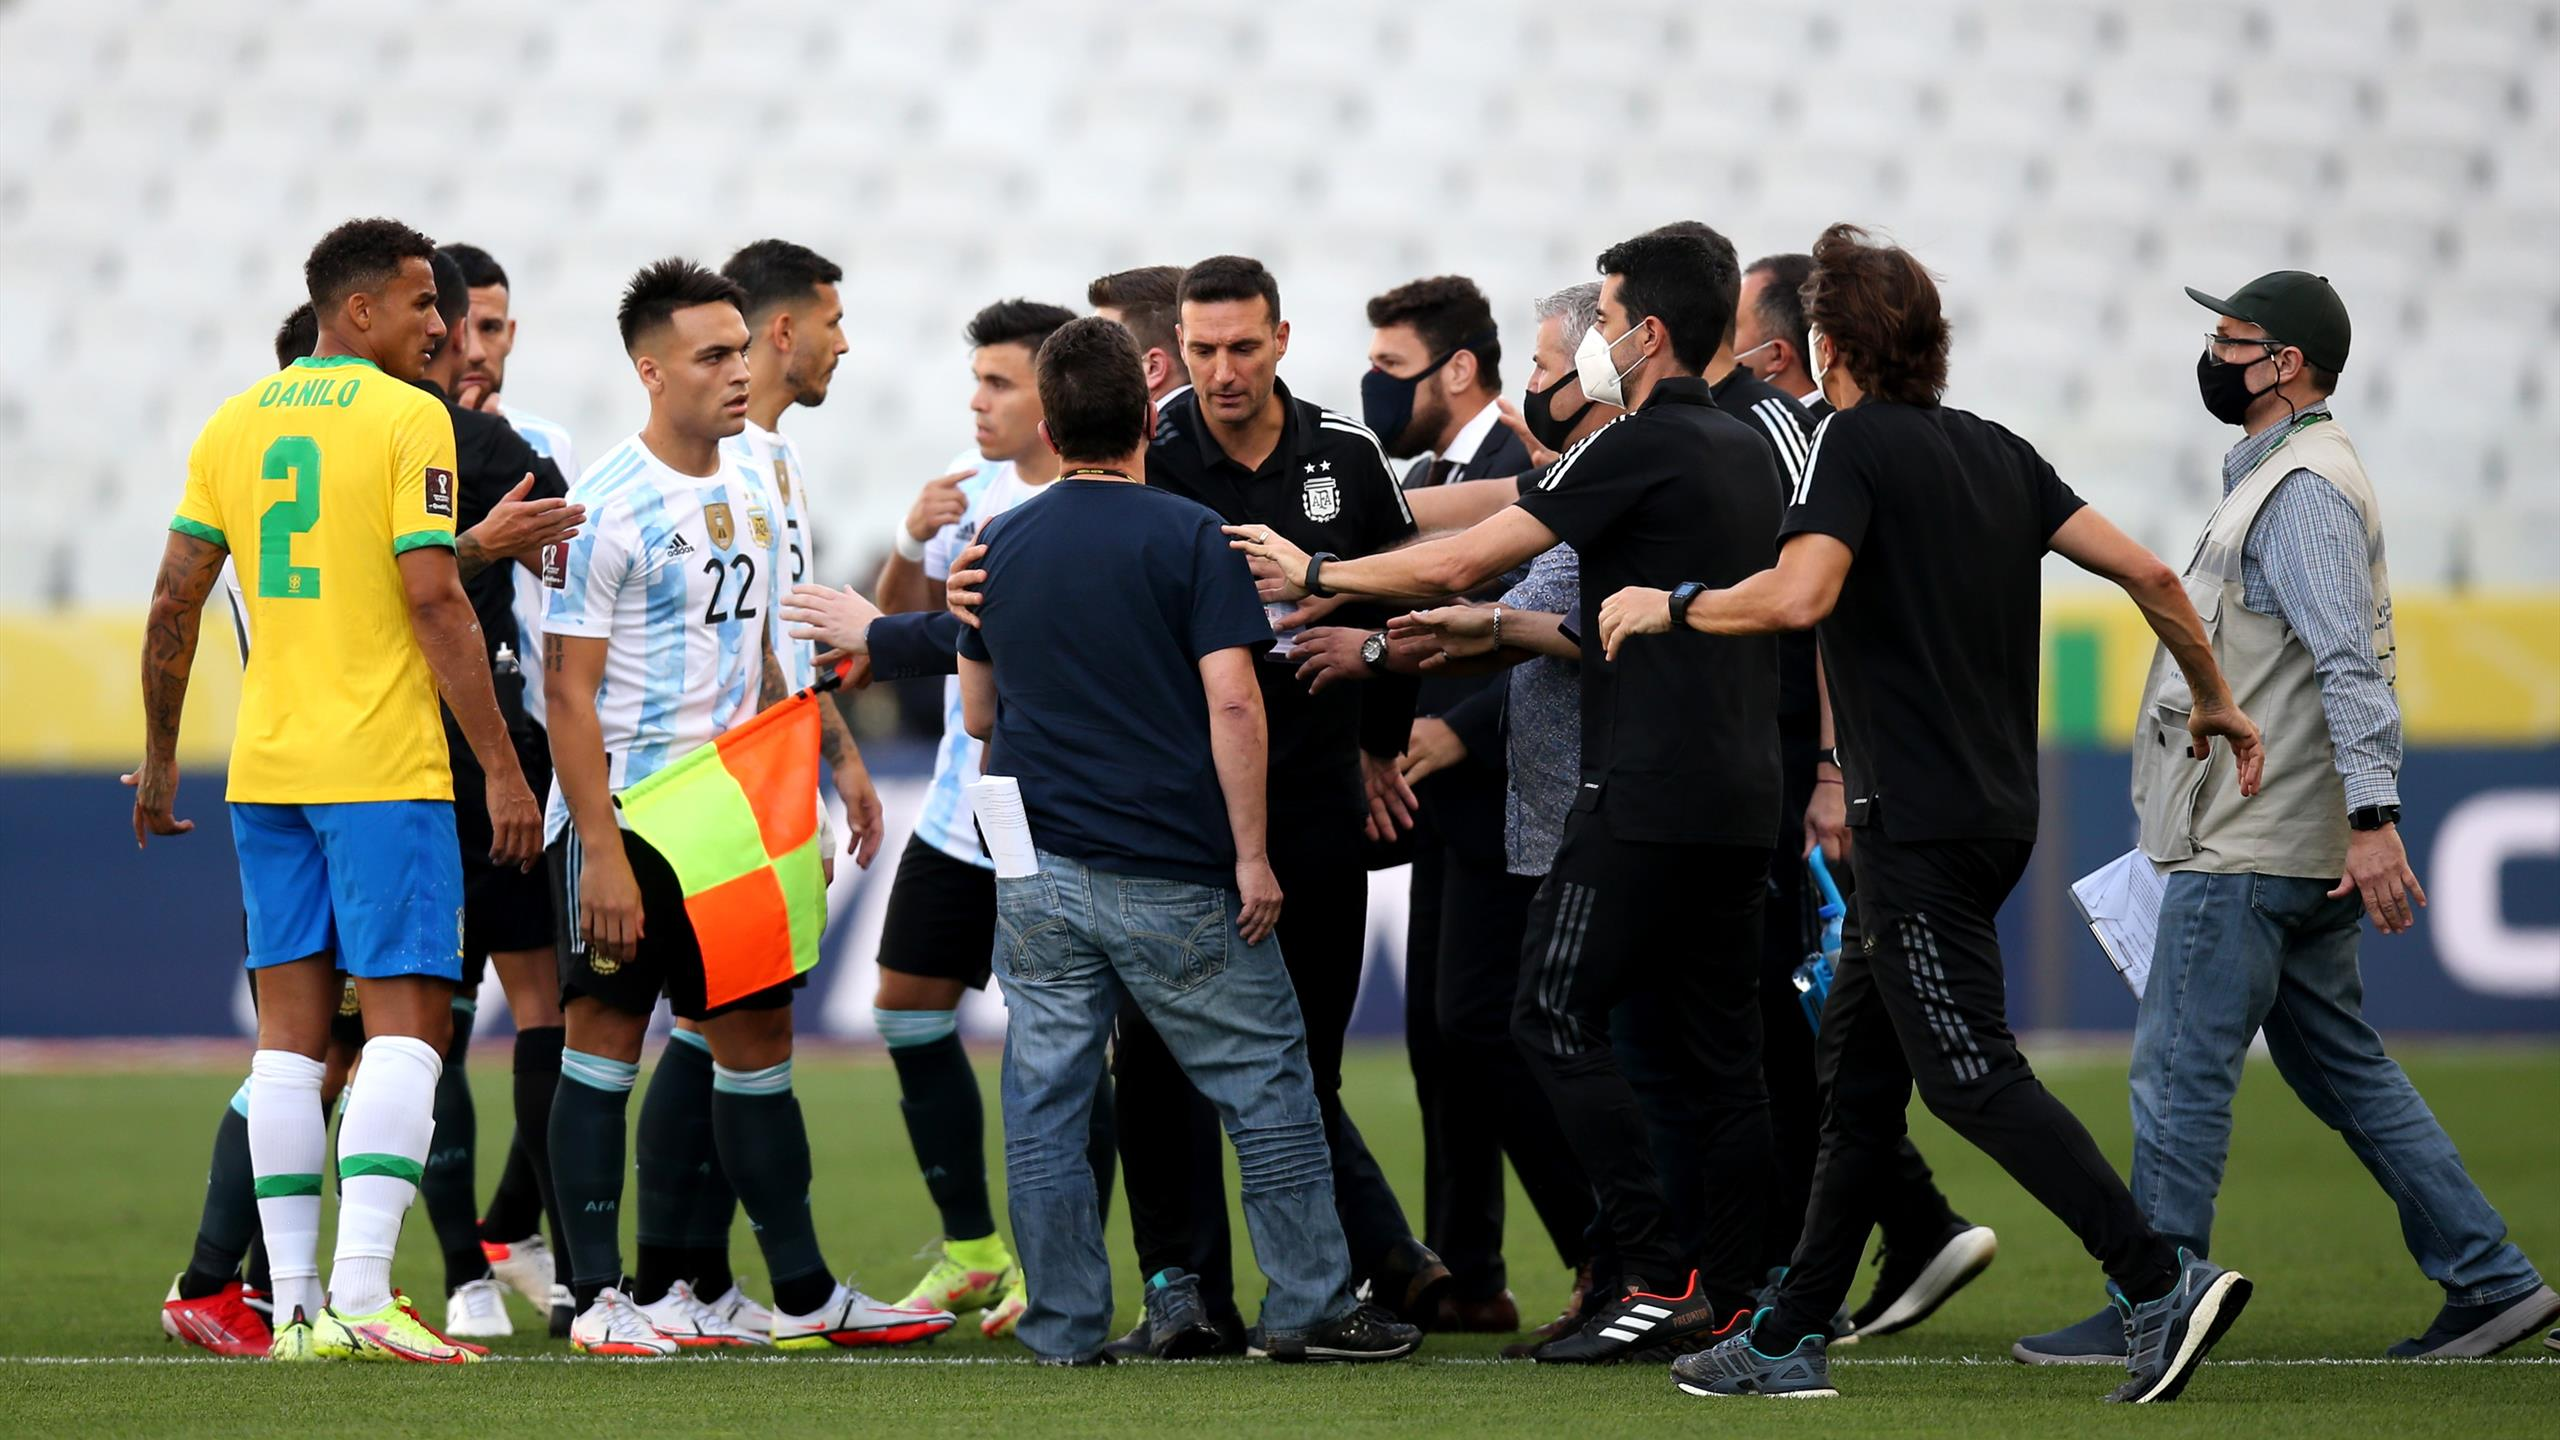 Brazil vs Argentina: World Cup Qualifier suspended after health officials enter pitch in row over Covid rules